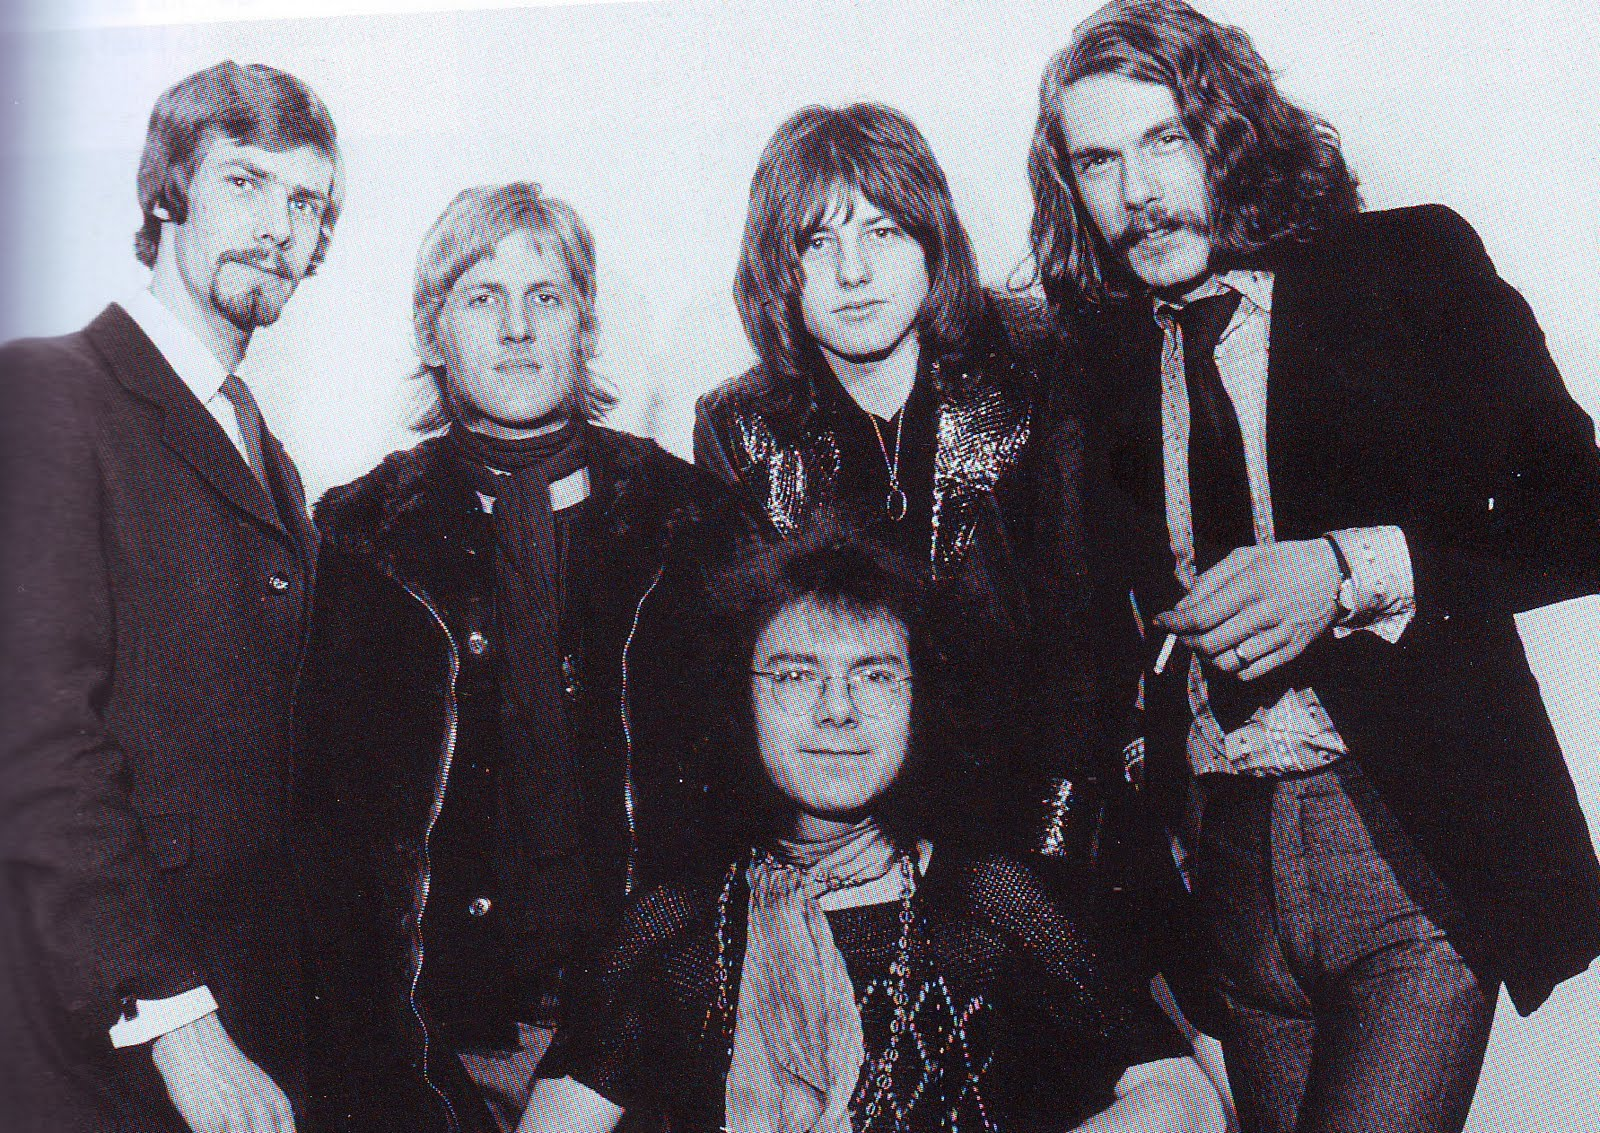 17 2 15 King Crimson Cat Food Top Of The Pops 1970